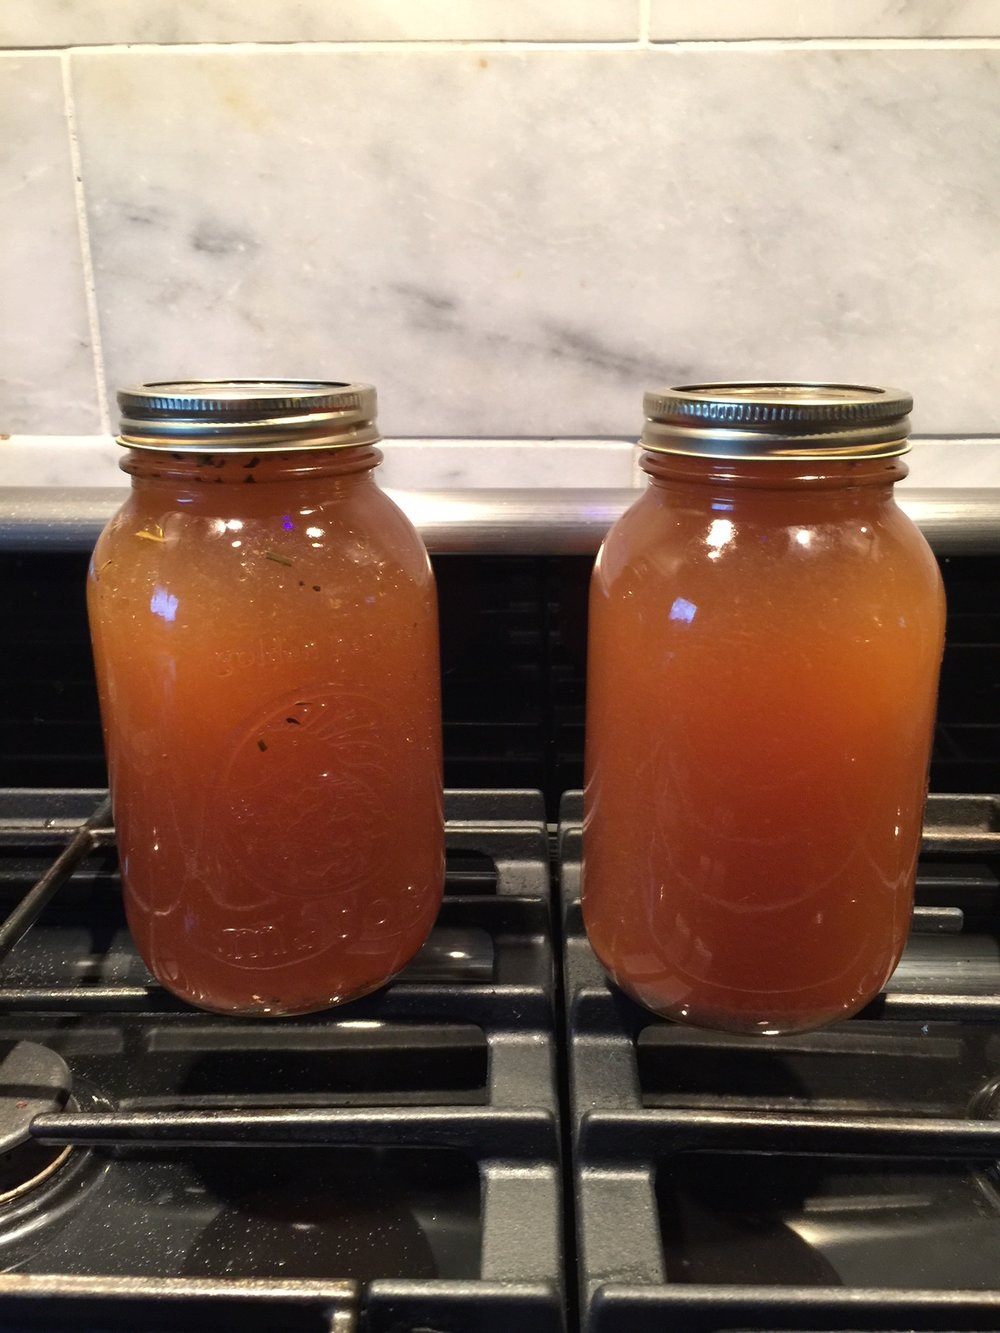 Liquid gold. Click the image for my favourite bone broth recipe.